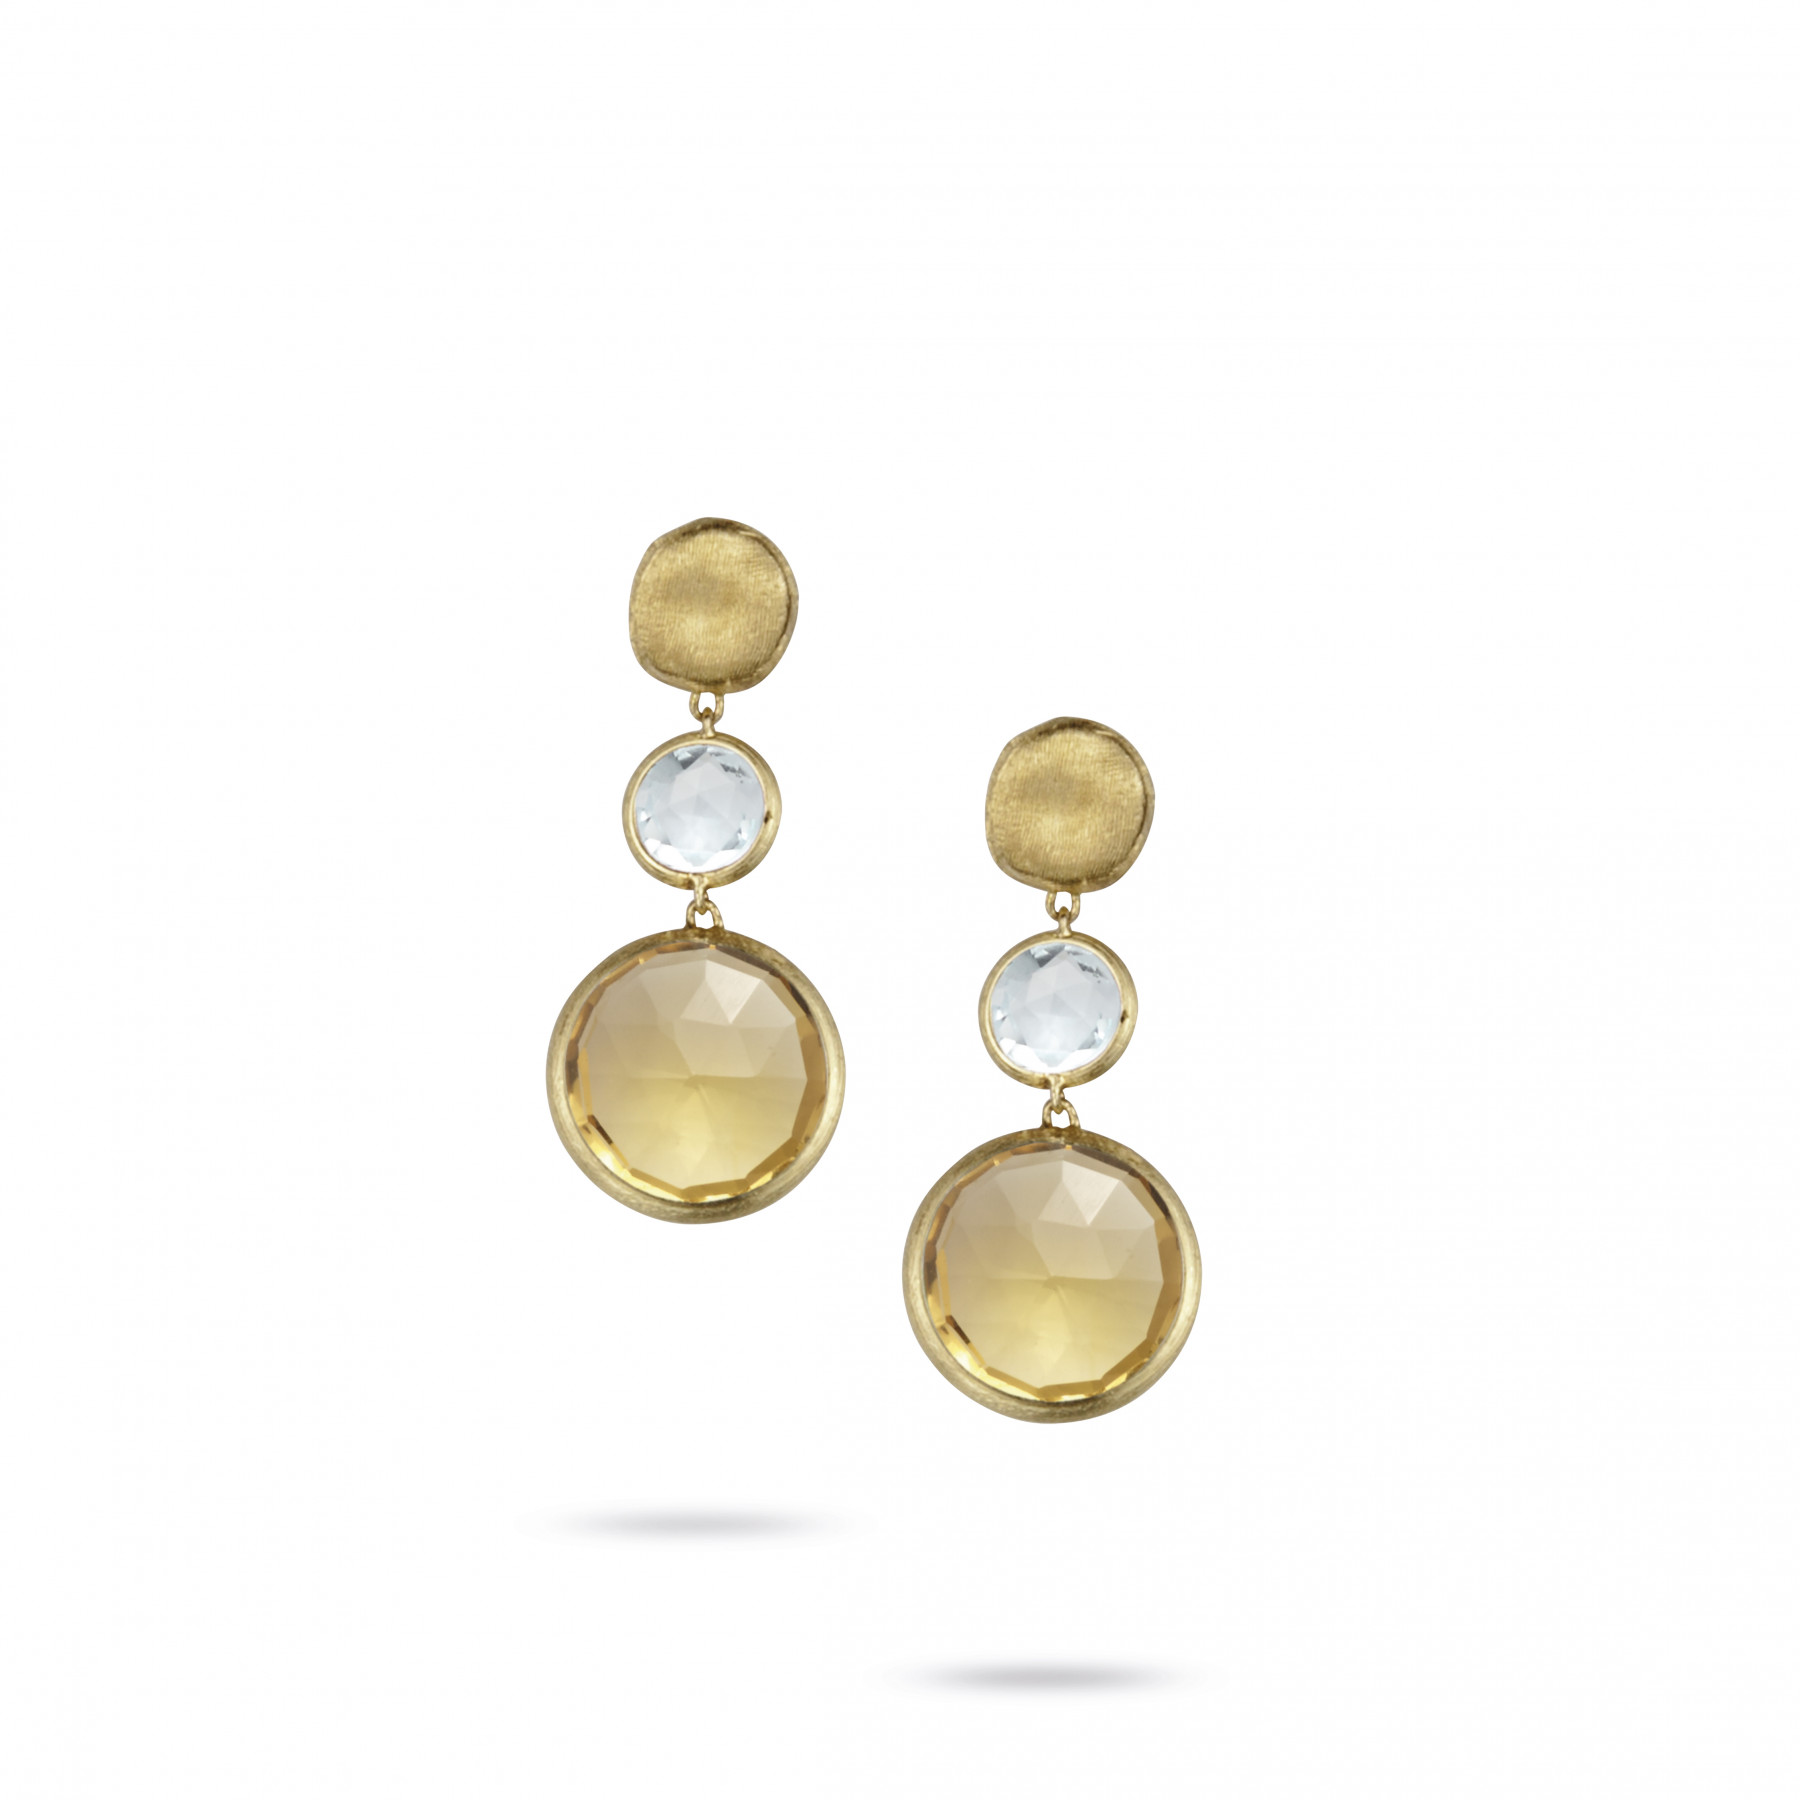 Marco Bicego Jaipur 18kt Yellow Gold 3 Drop Earrings with Semi-Precious Gemstones